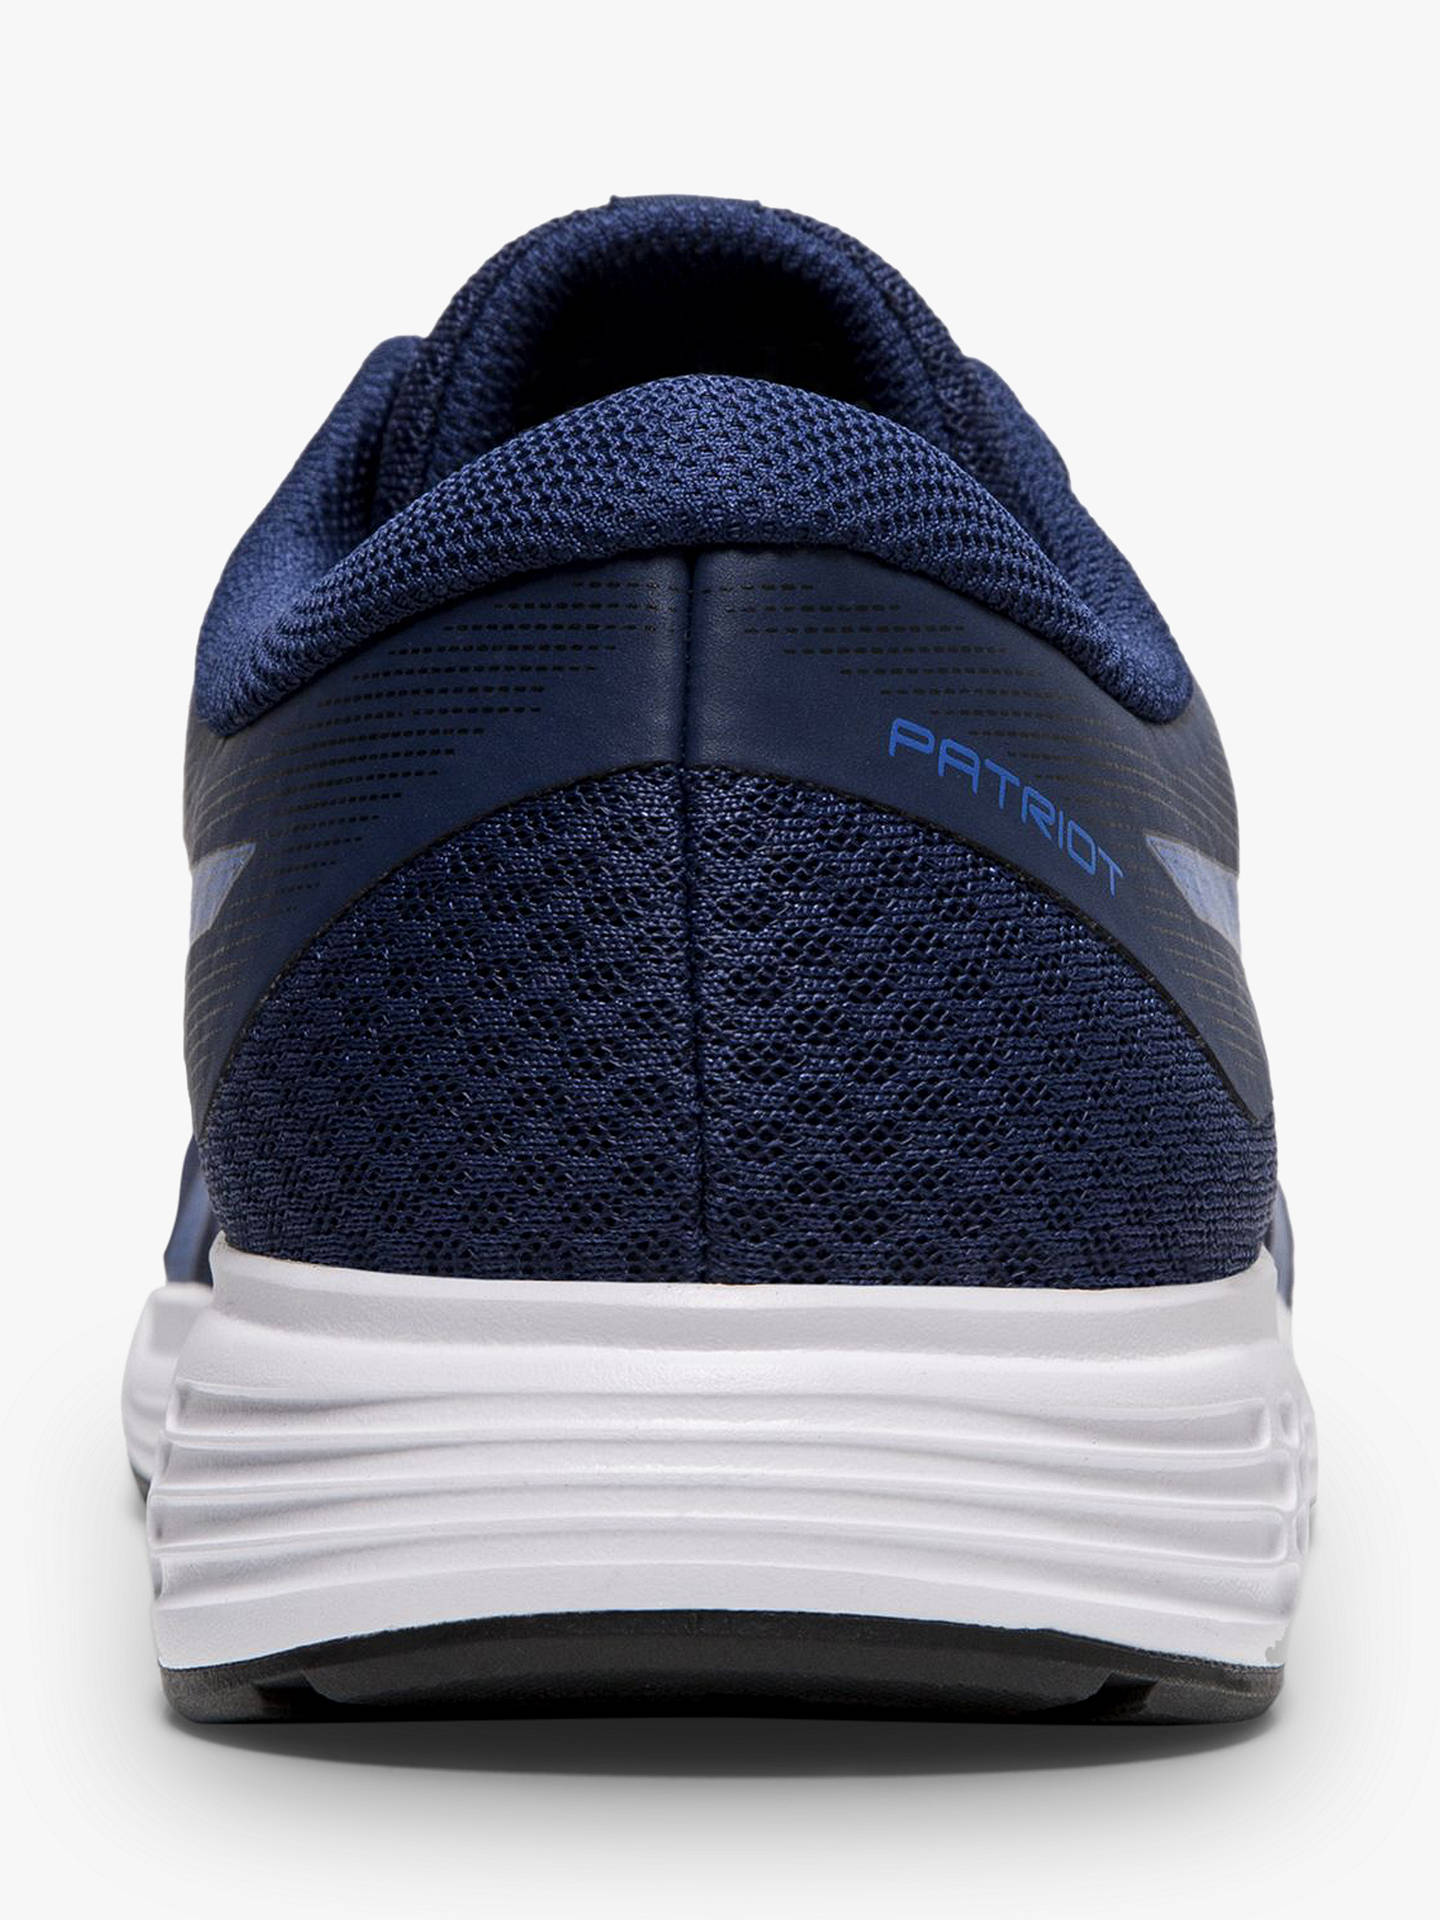 Buy ASICS PATRIOT 11 Men's Running Shoes, Blue/Imperial, 7 Online at johnlewis.com